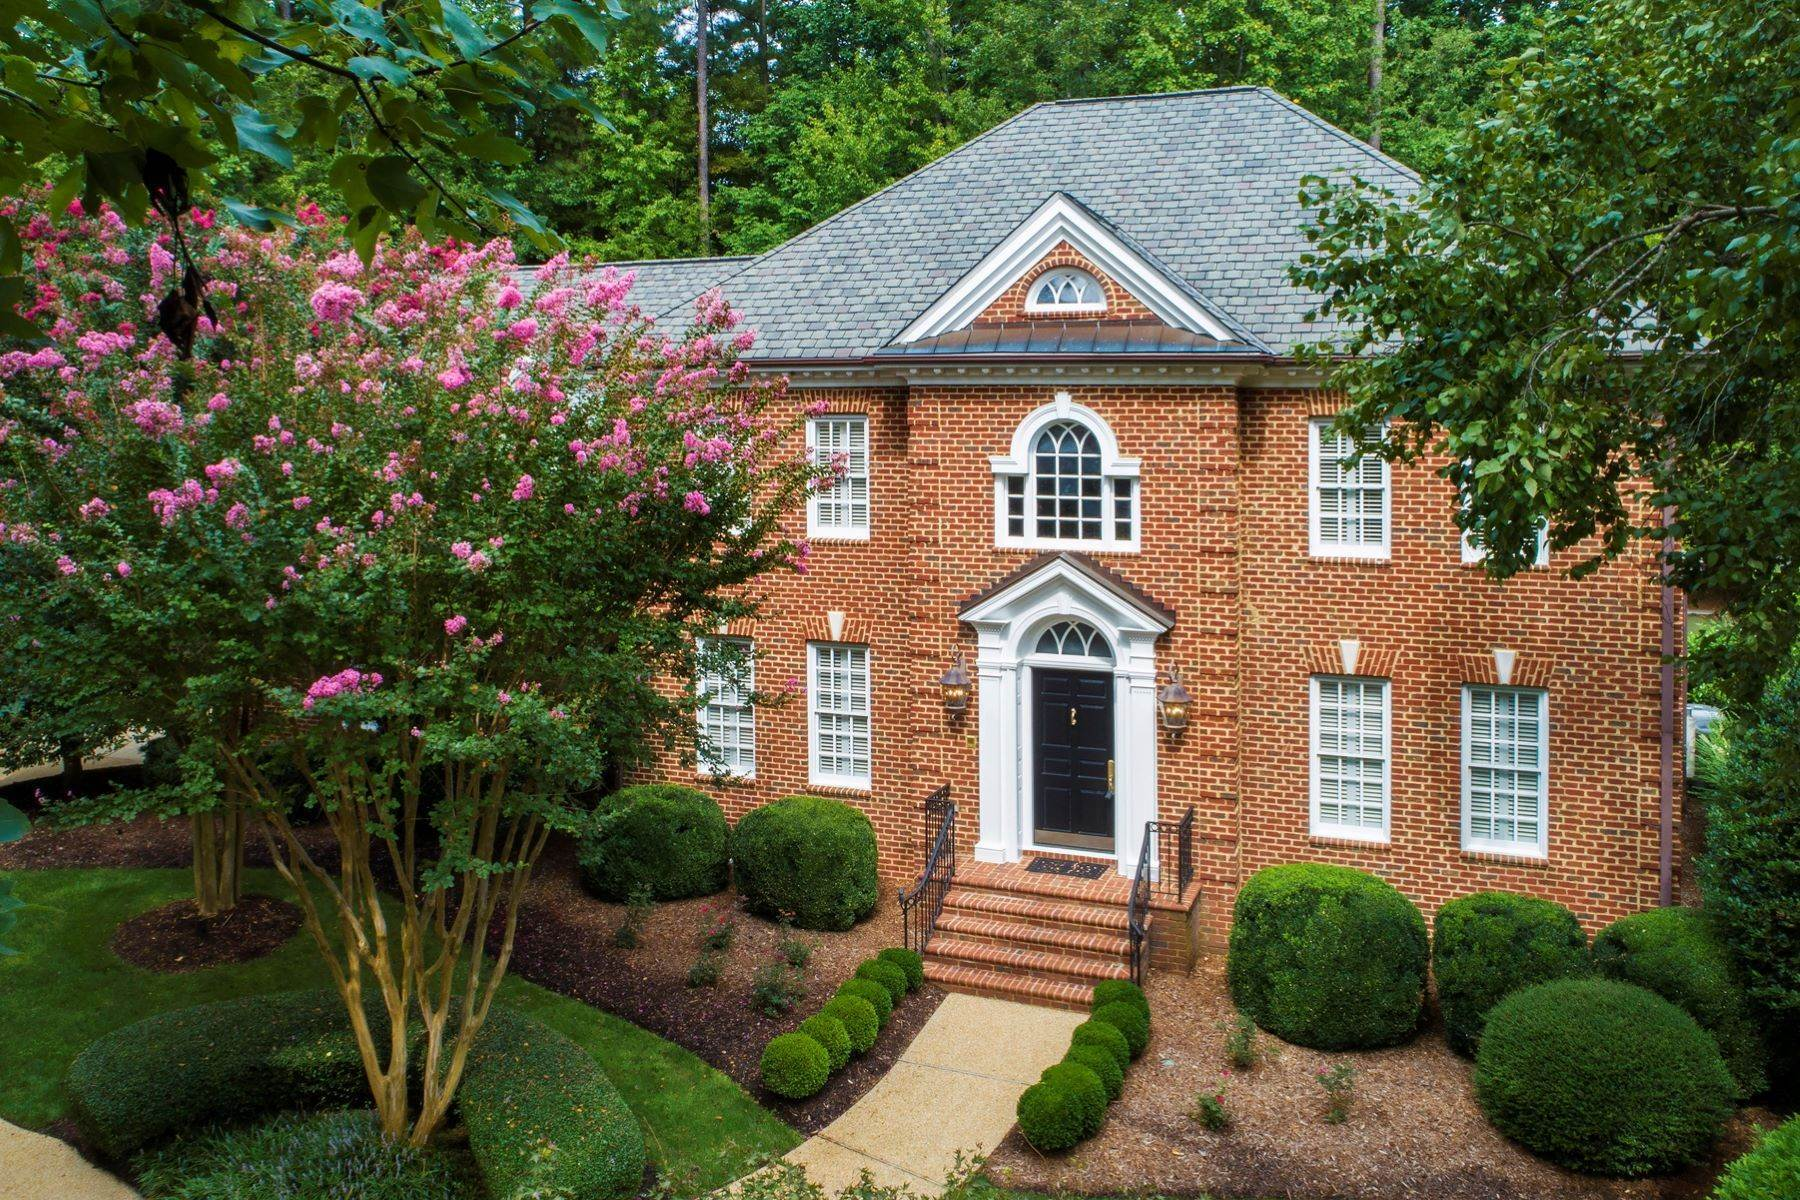 Single Family Homes for Sale at Elegant, Custom-Built Residence with Abundant Amenities 106 Symphony Court Cary, North Carolina 27518 United States